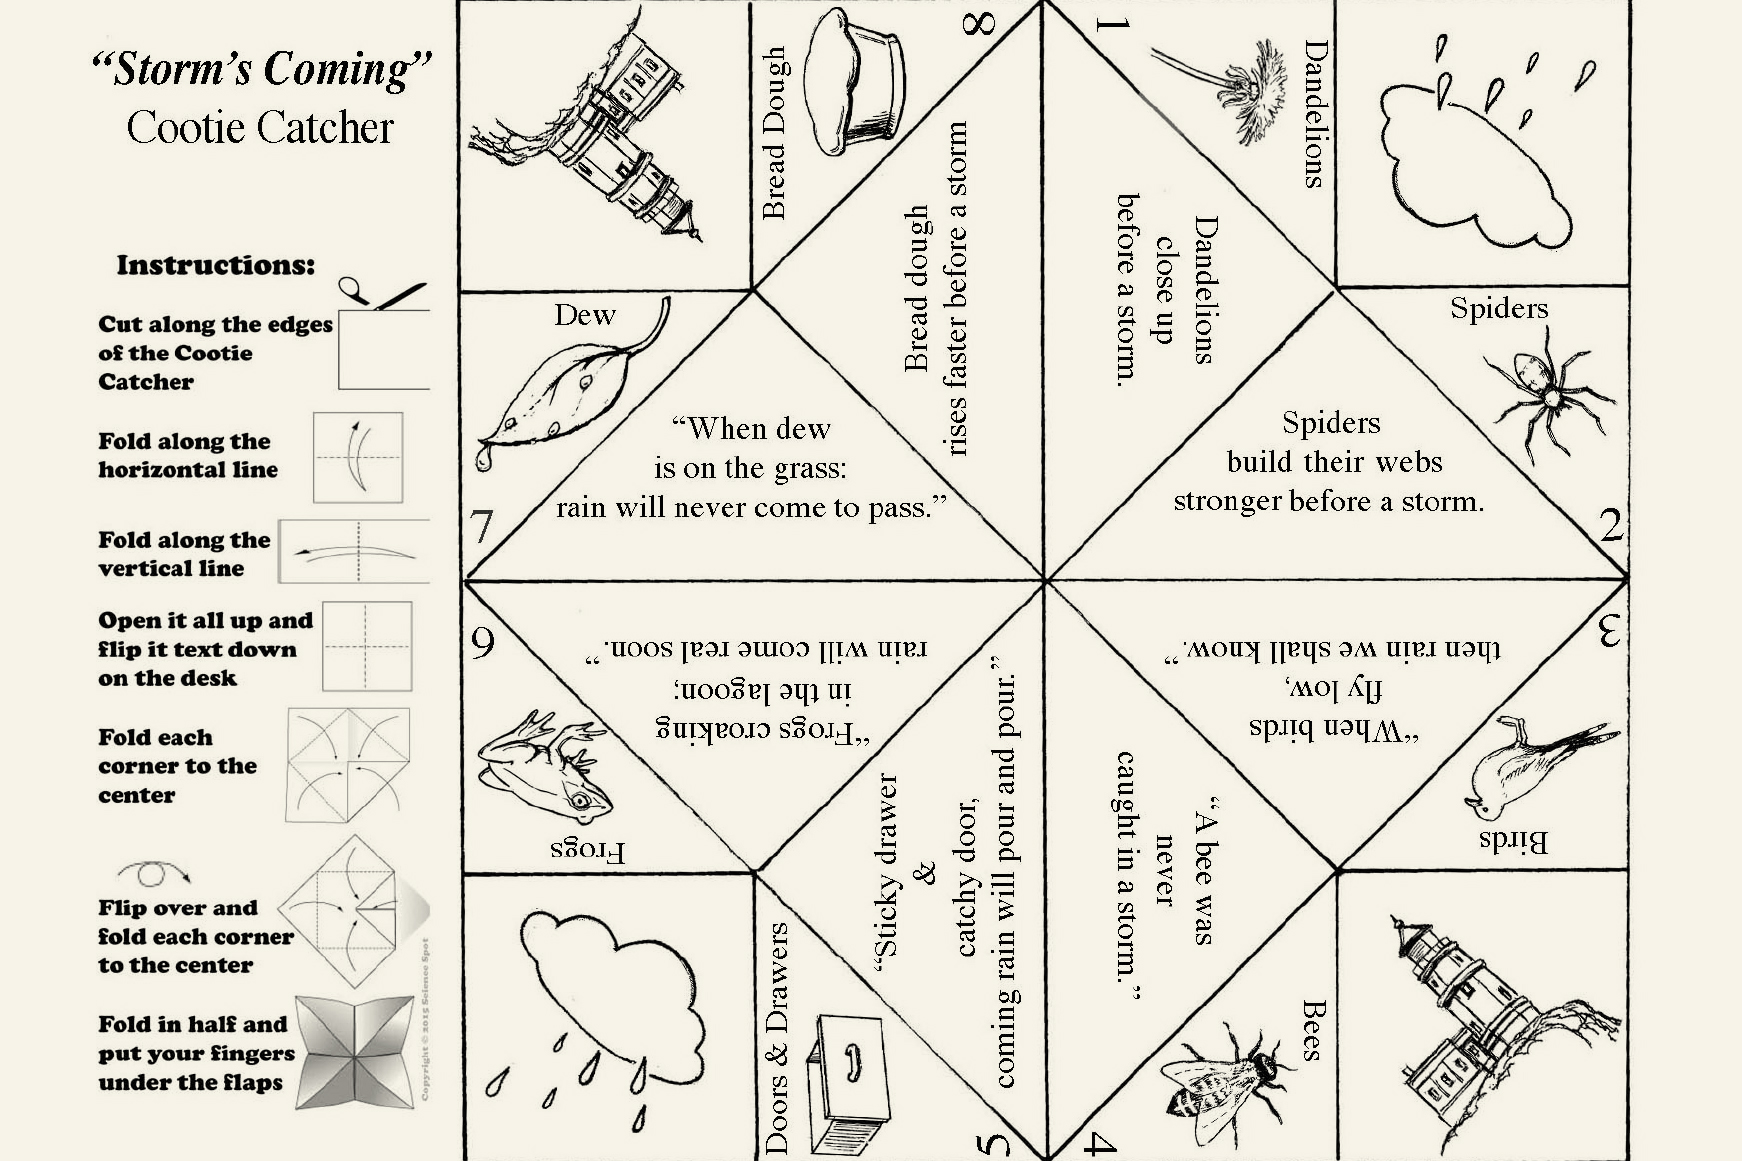 storms-coming-cootie-catcher.jpg